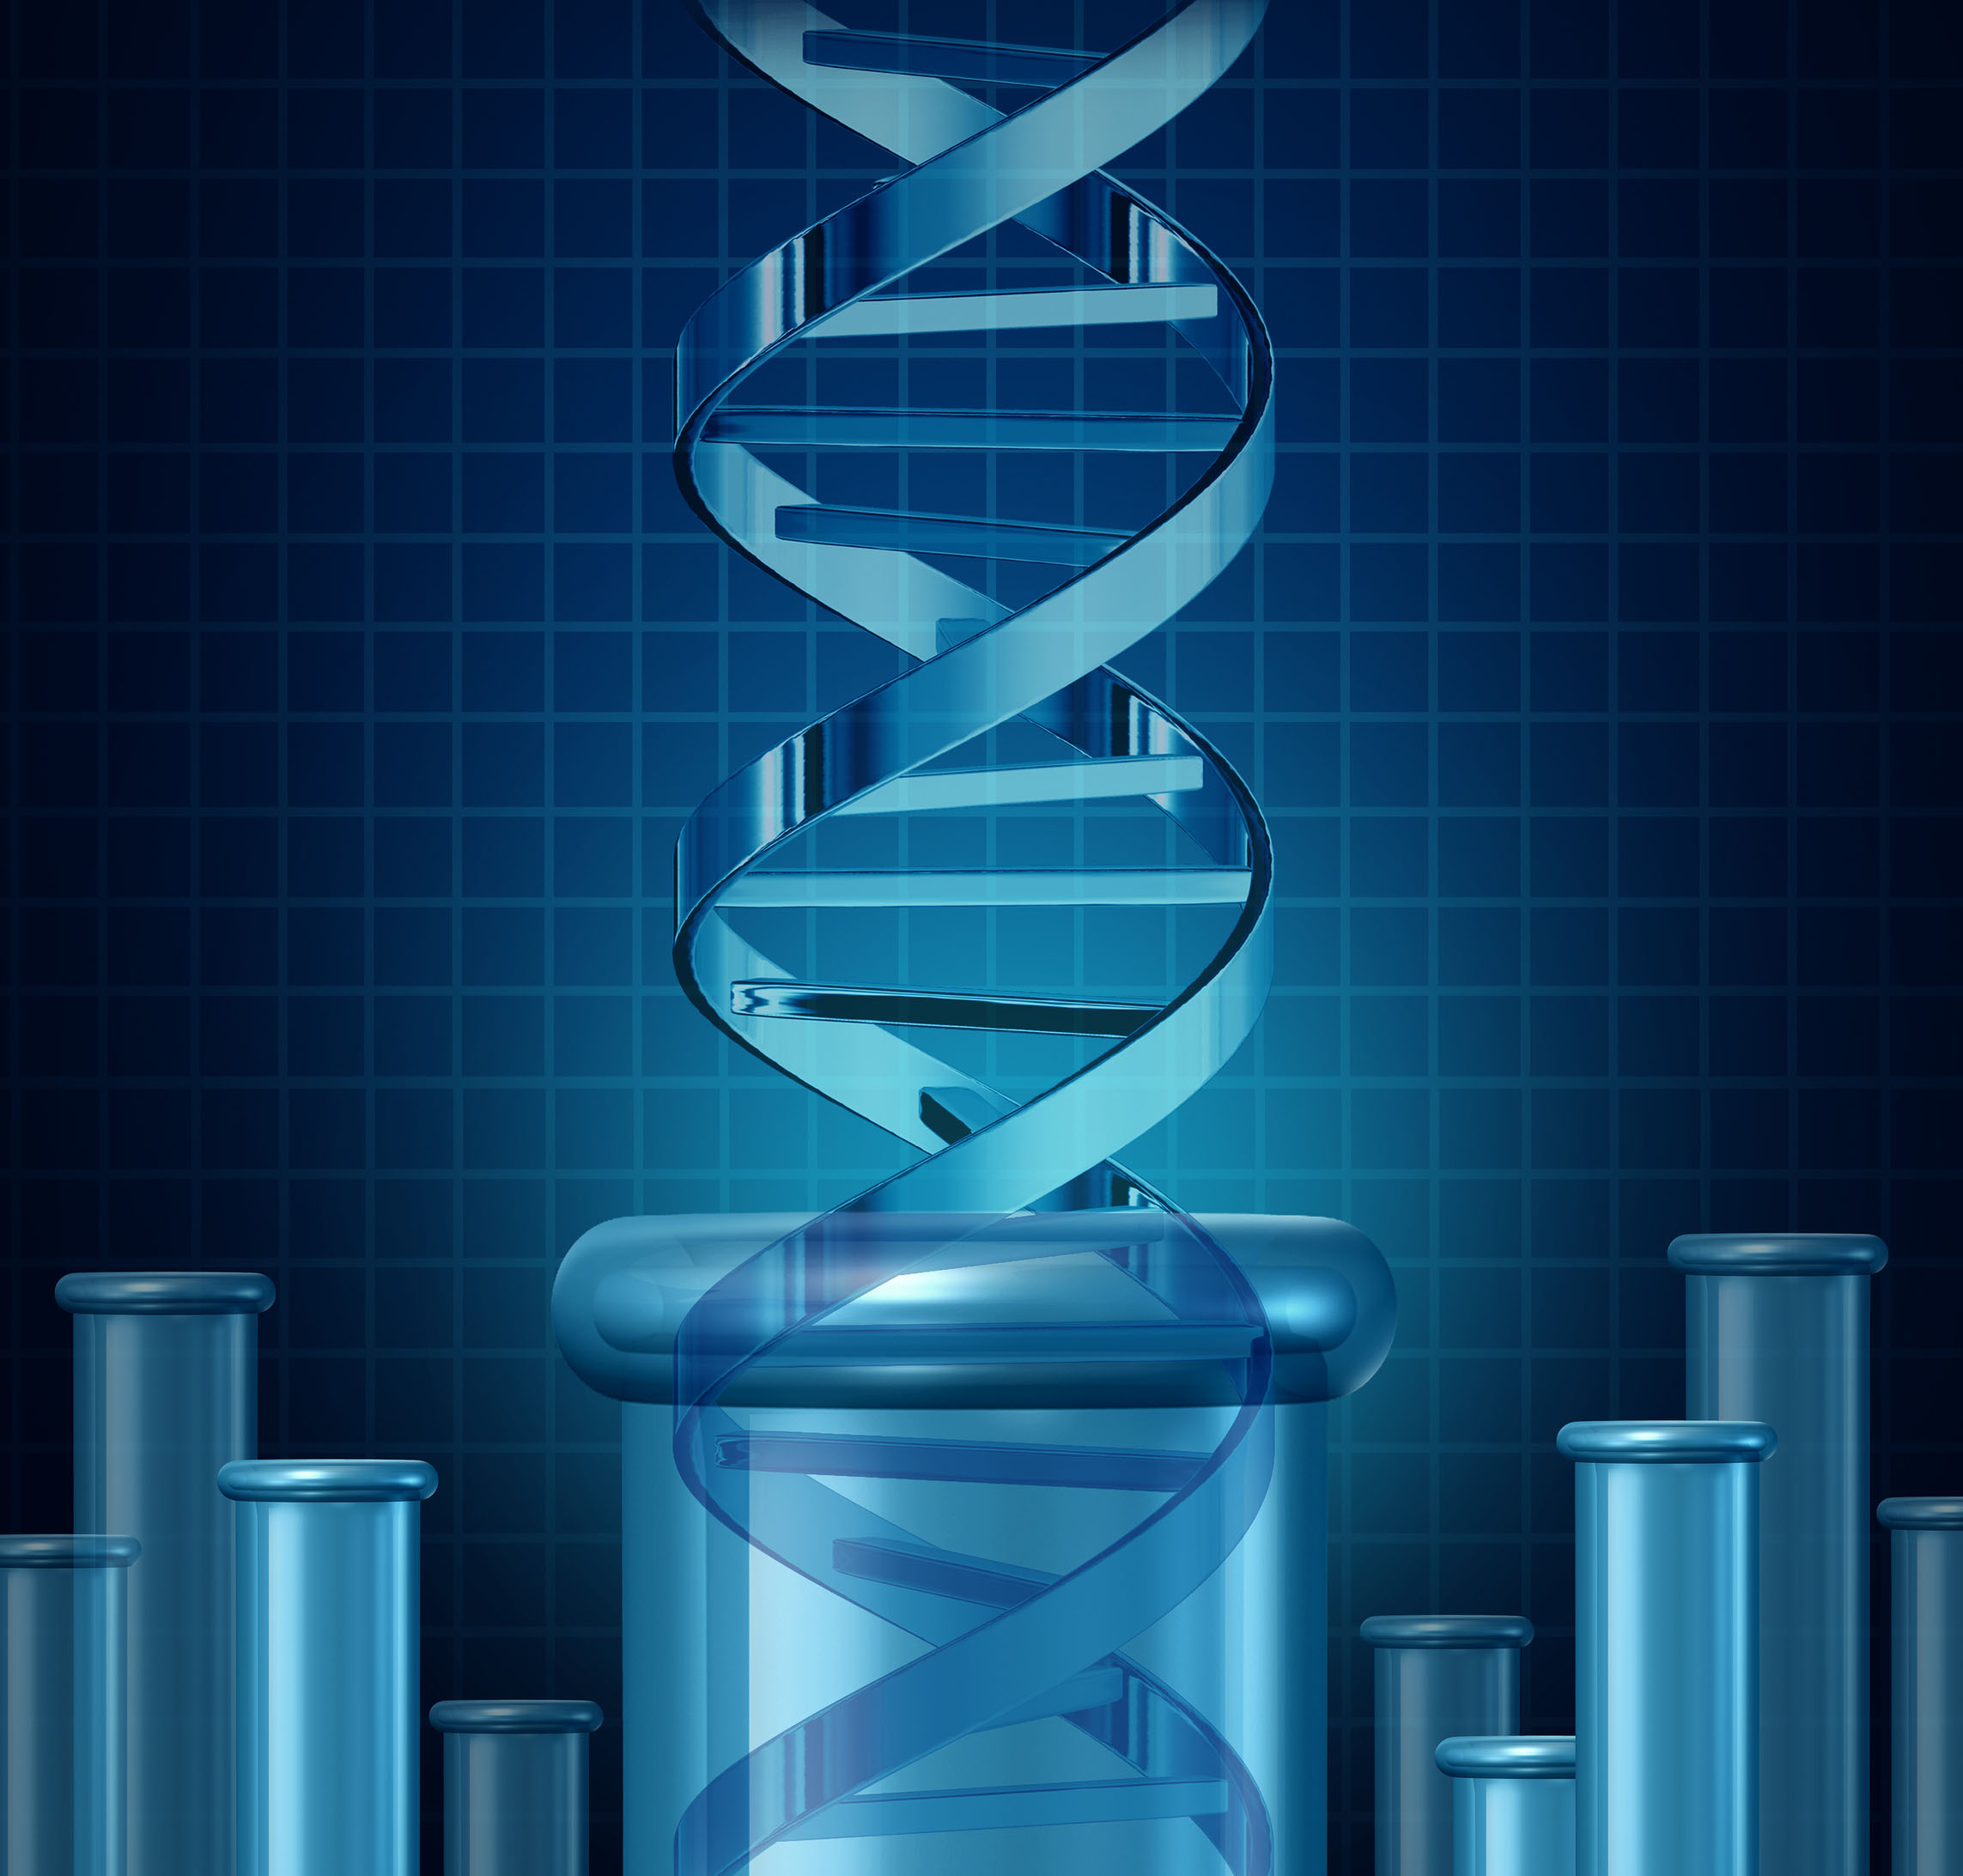 Watch out for this Medicare scam involving DNA genetic tests